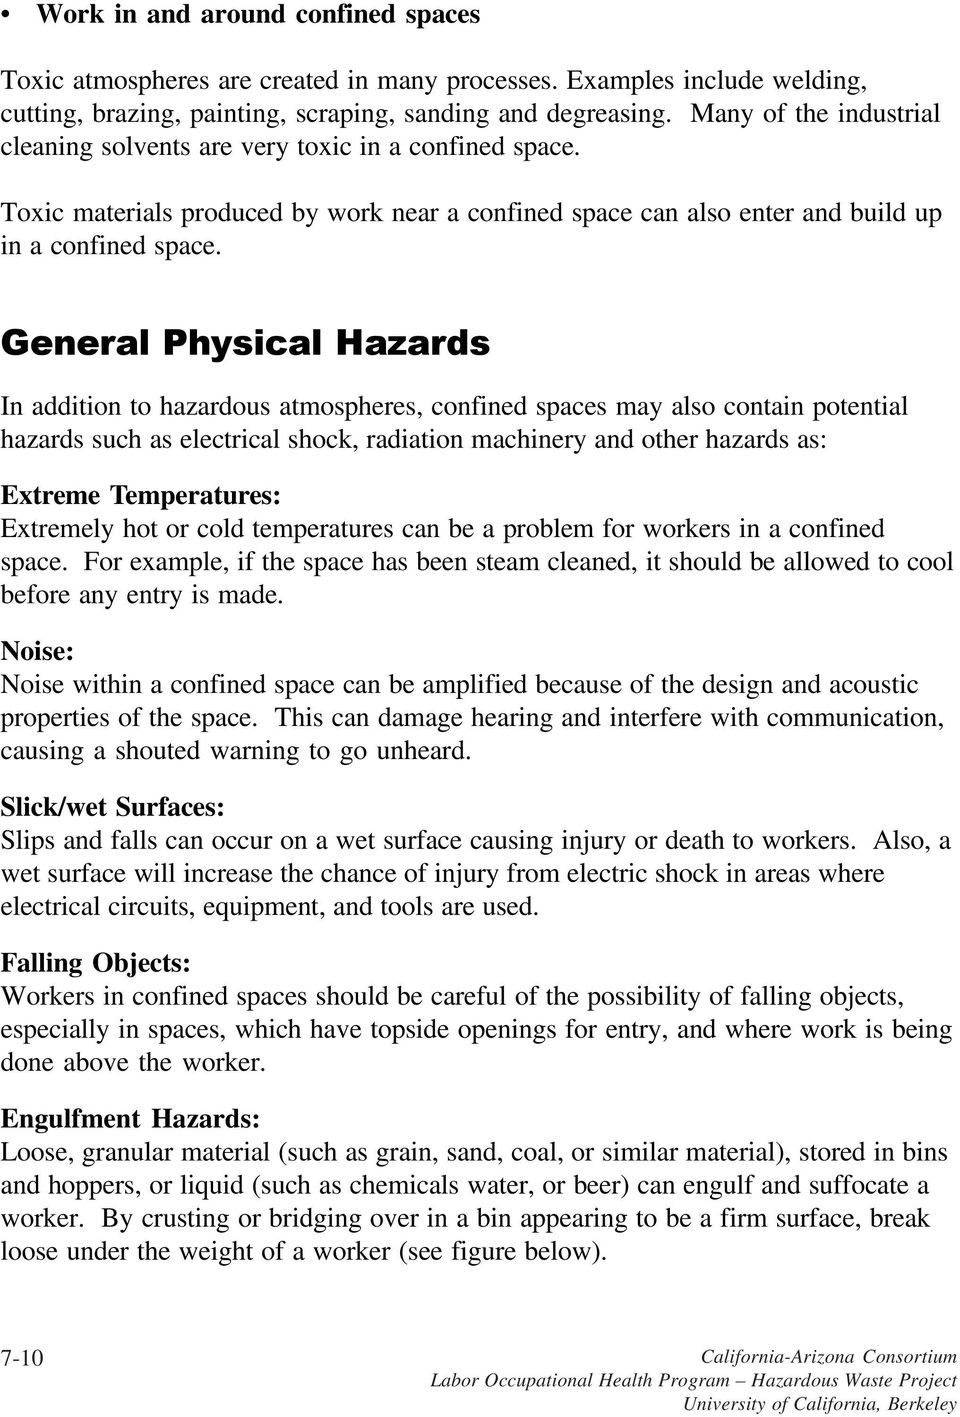 General Physical Hazards In addition to hazardous atmospheres, confined spaces may also contain potential hazards such as electrical shock, radiation machinery and other hazards as: Extreme